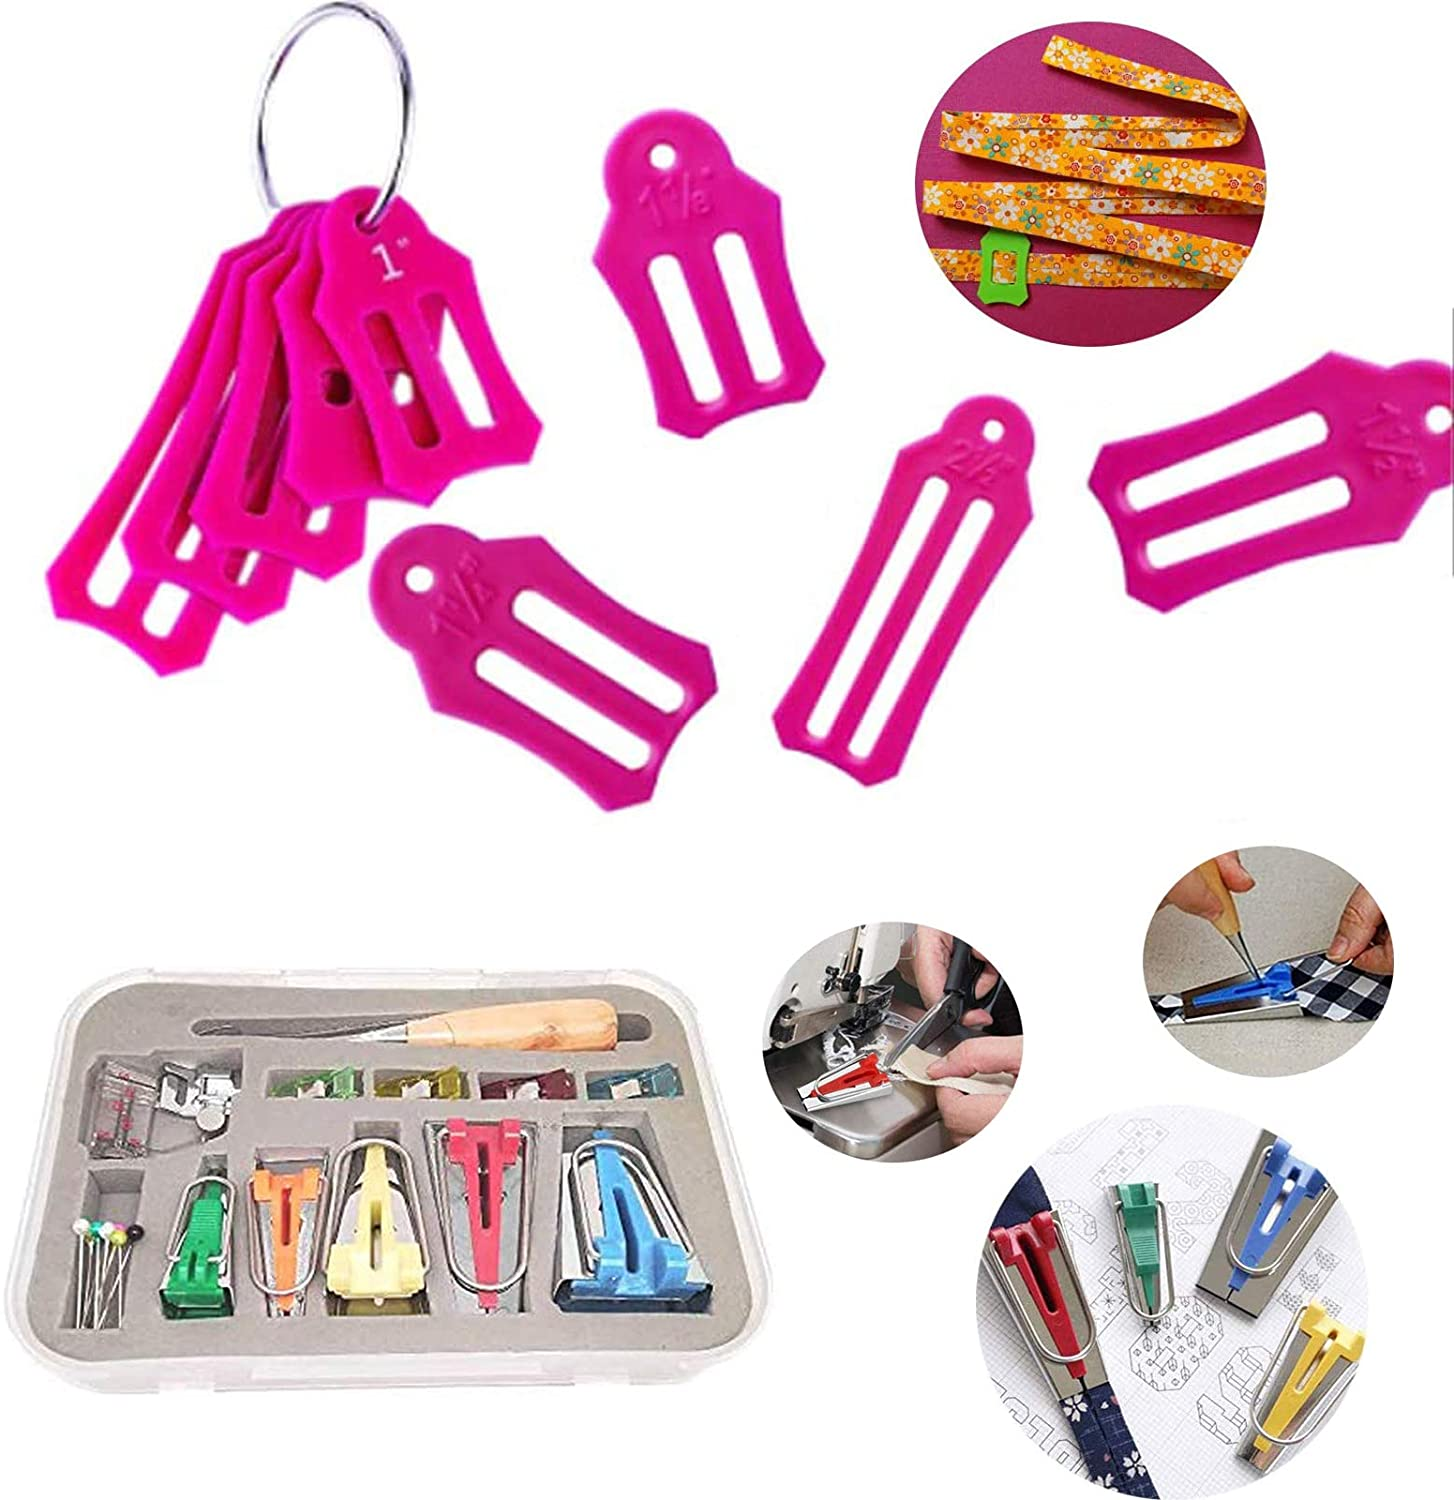 YICBOR Bias Tape Maker Kits All 5 Sizes 6MM 9MM 12MM 18MM 25MM Binding Foot Craft Clips Awl Quilter's Pin Comes with 10pcs Multi-Sizes Folding Fabric and Biasing Strips Roll Tool Set (Pink)